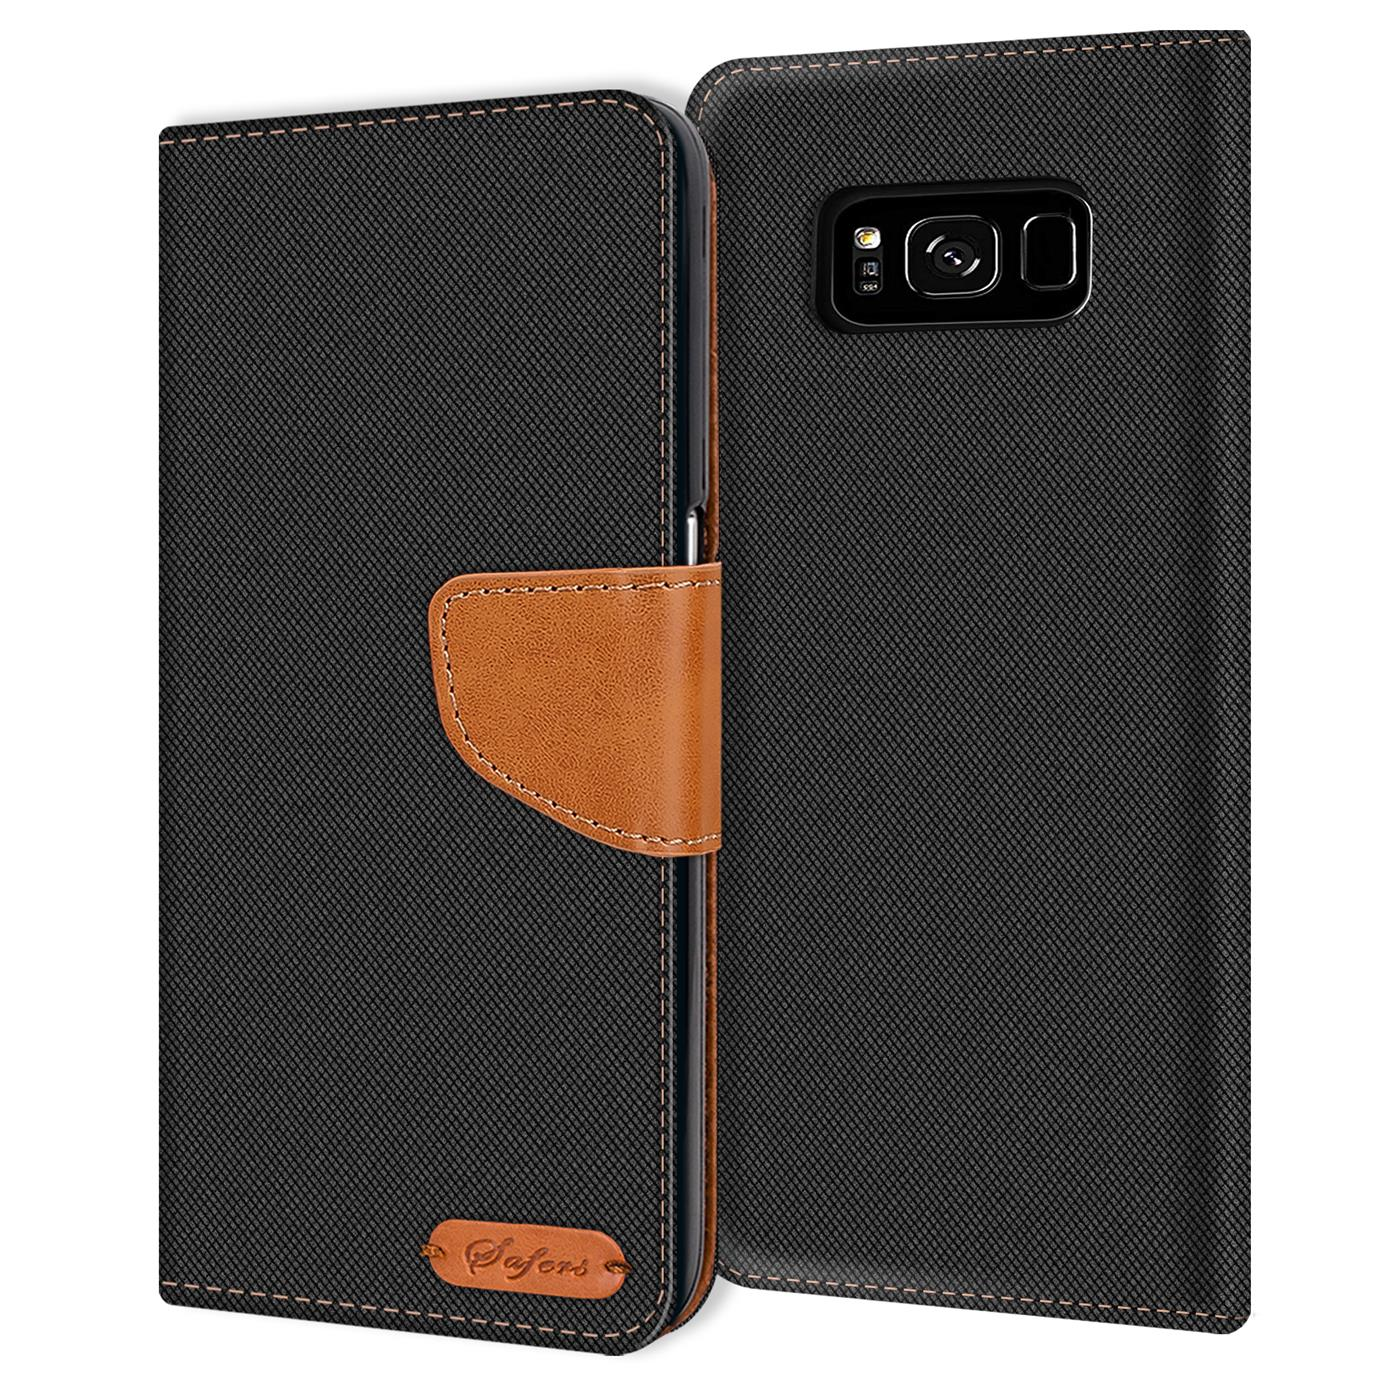 Samsung-Galaxy-S8-Plus-Phone-PU-Leather-Magnetic-Flip-Case-Wallet-Denim-Cover thumbnail 6